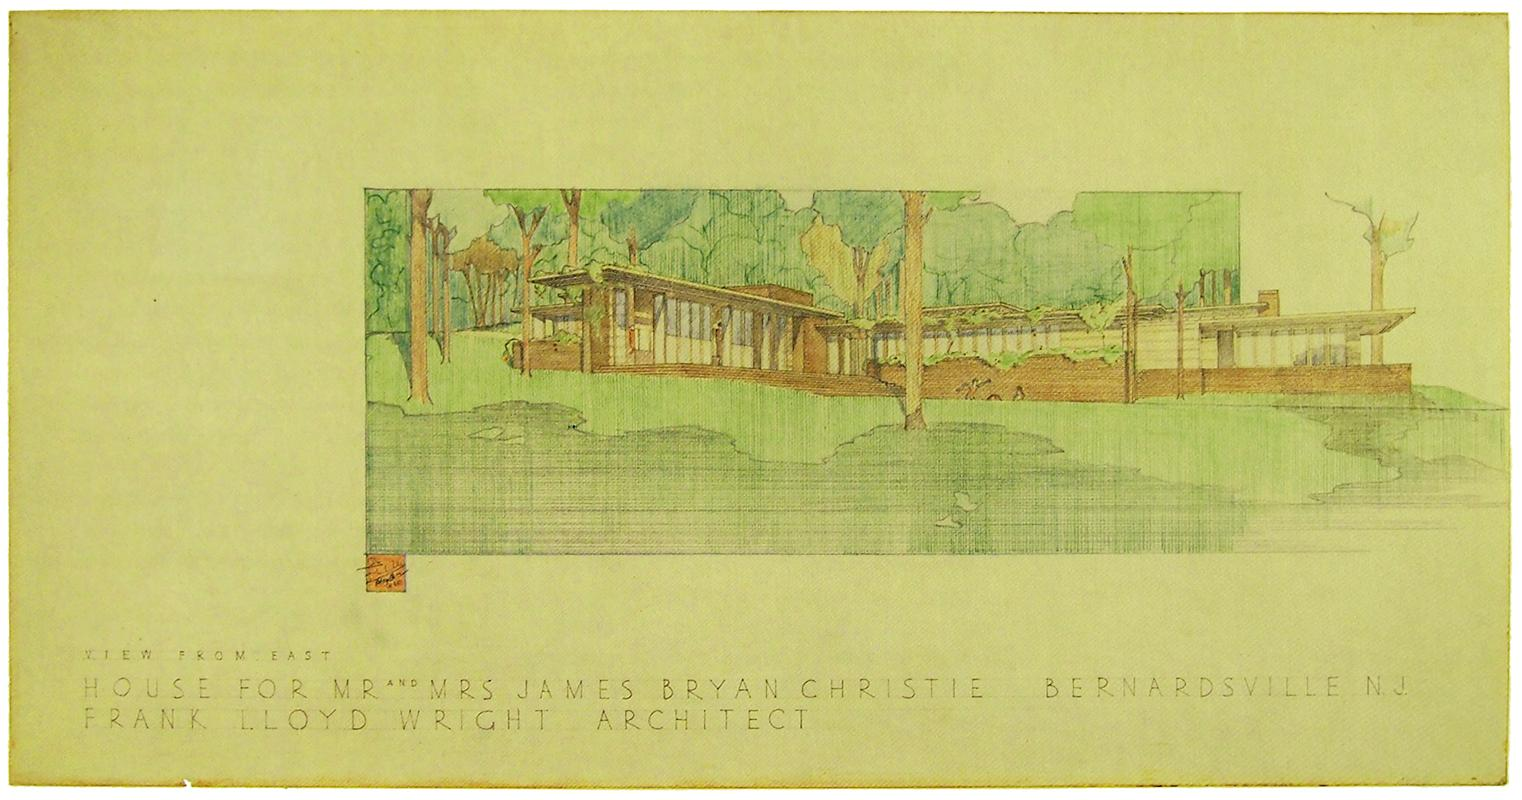 Frank Lloyd Wright. Envisioning Architecture (MoMA, New York, 2002) 1940, 95